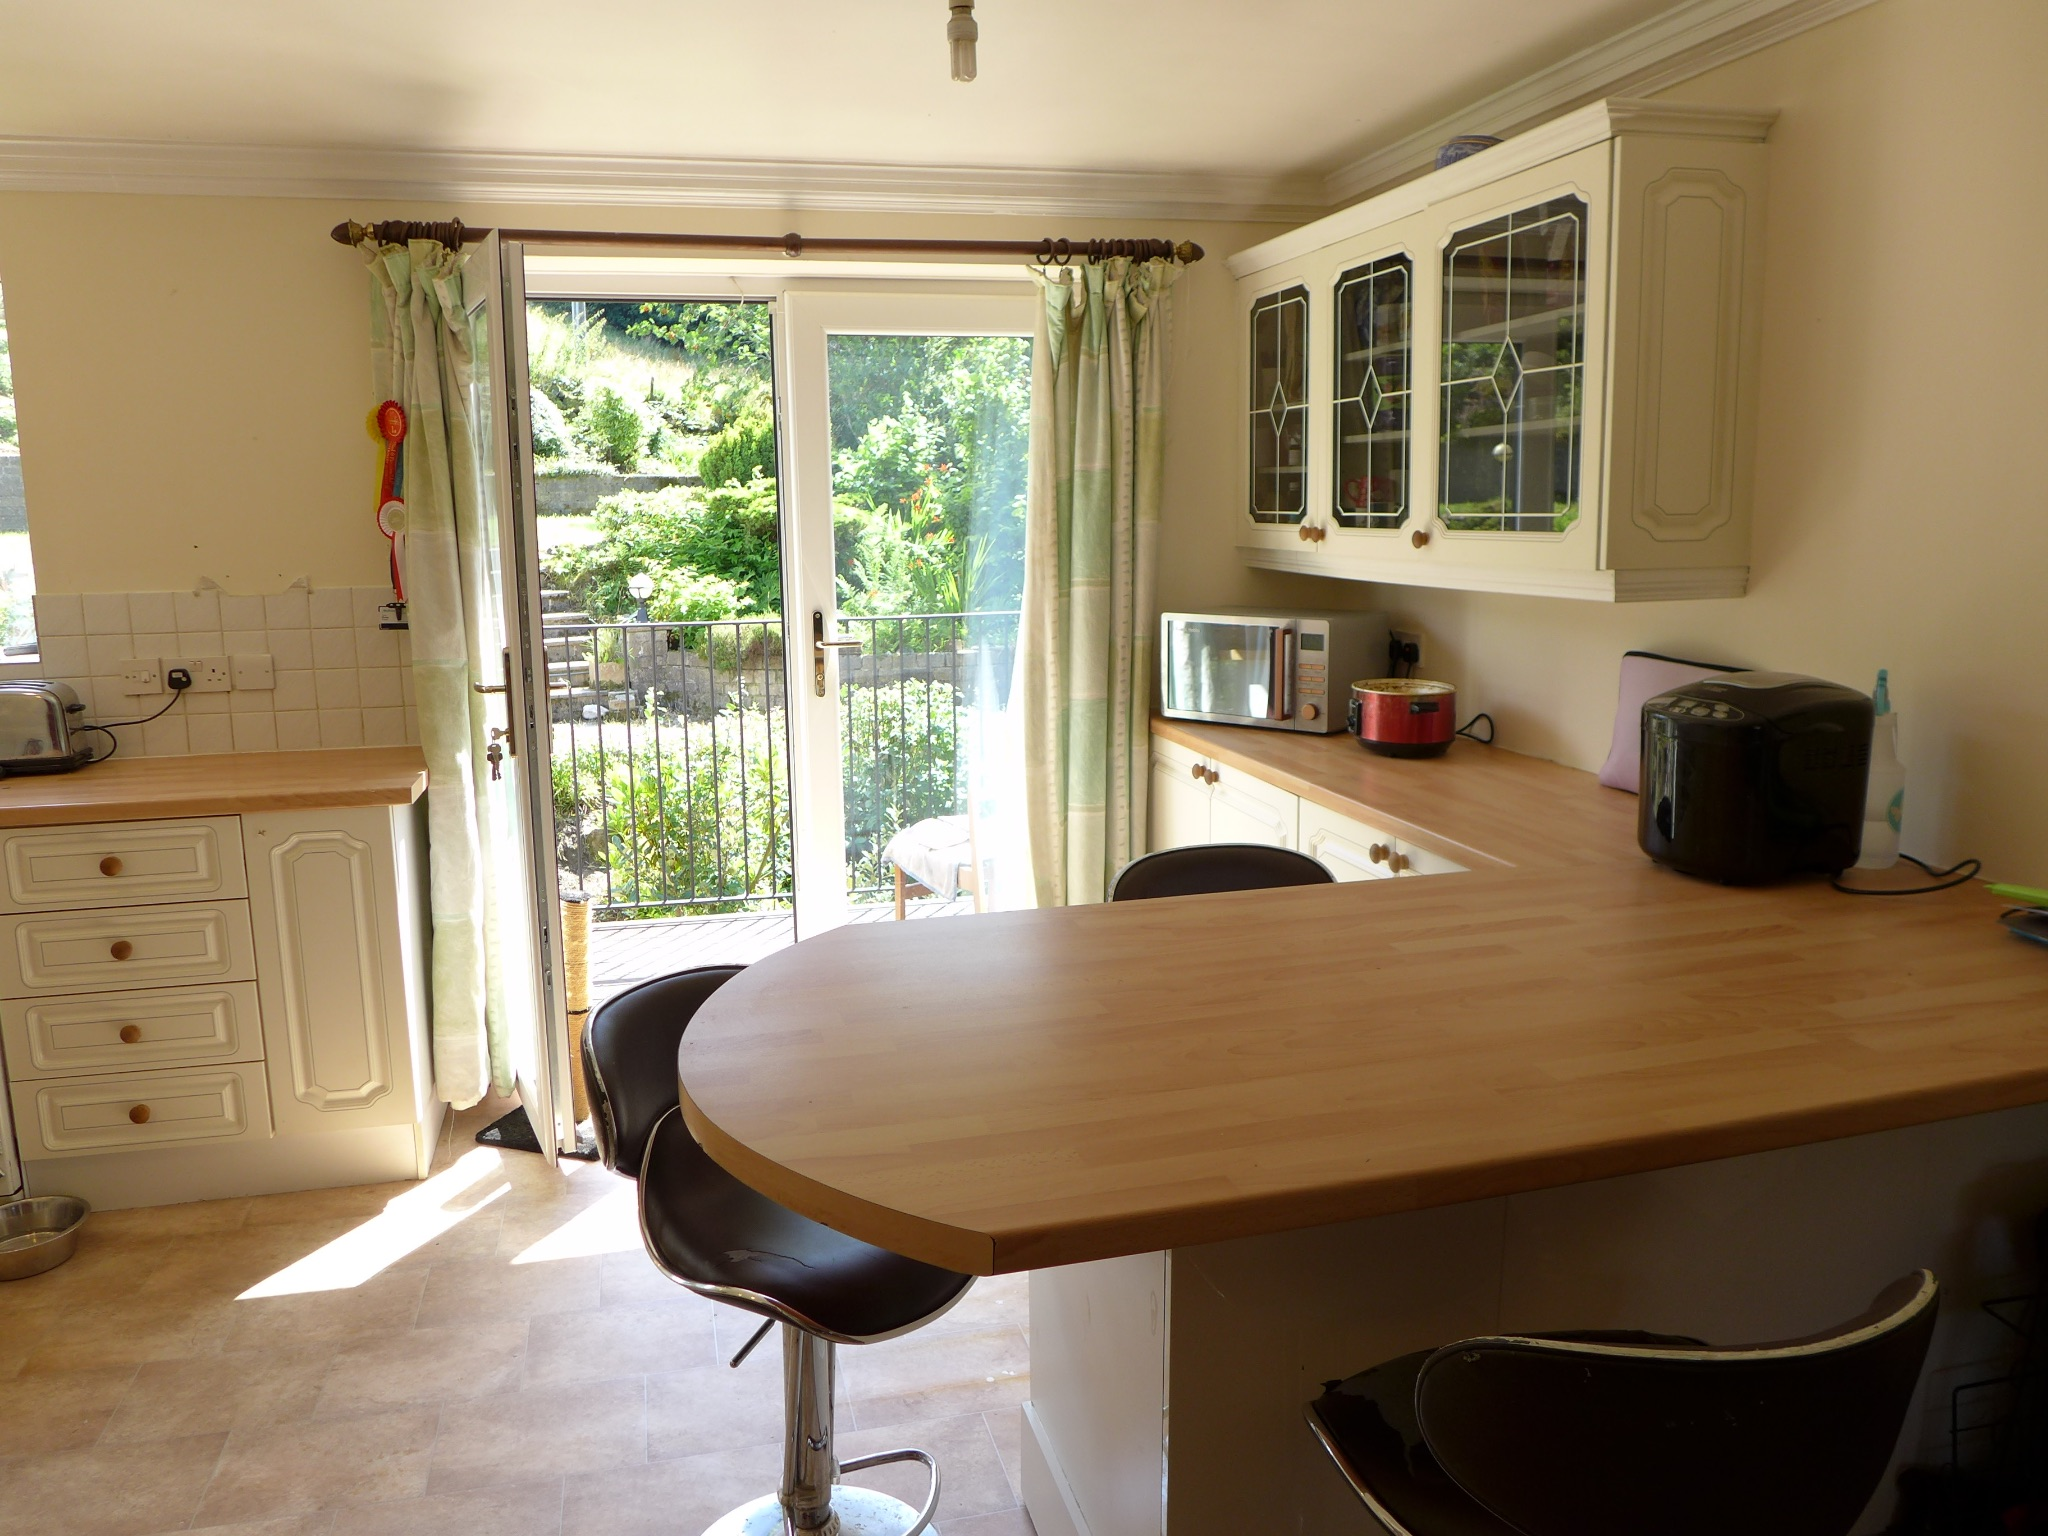 4 bedroom detached house For Sale in Todmorden - Photograph 9.